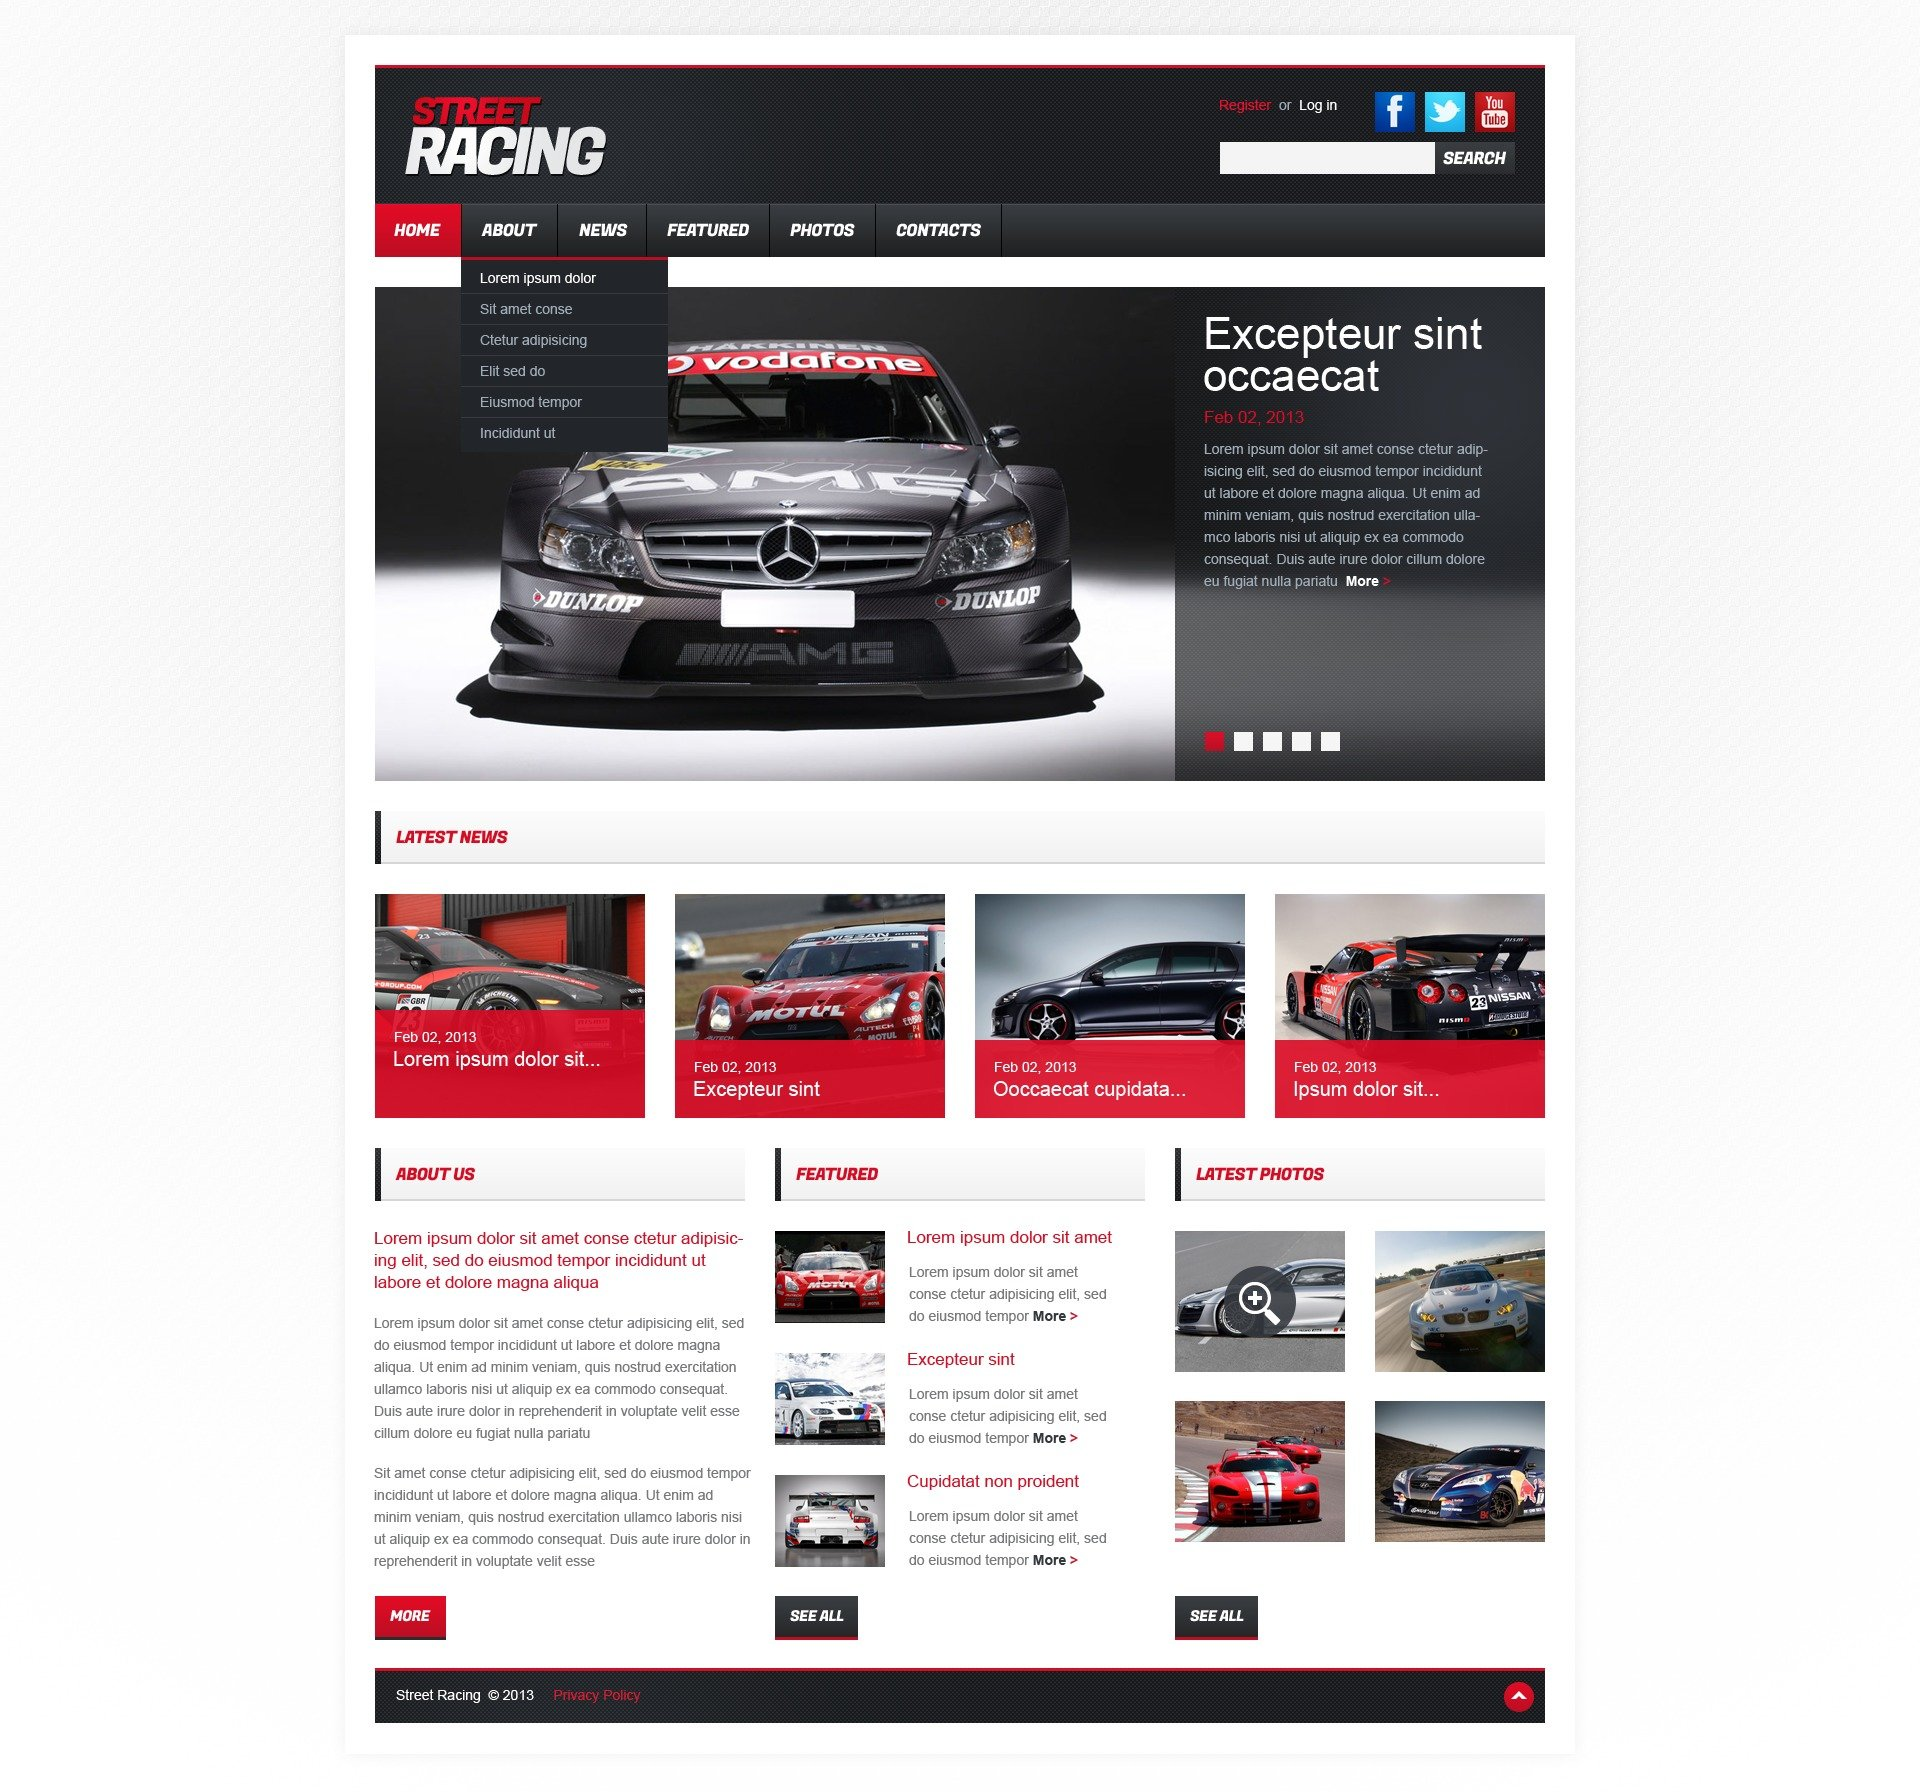 Responsive Website Vorlage für Autorennsport #42121 - Screenshot